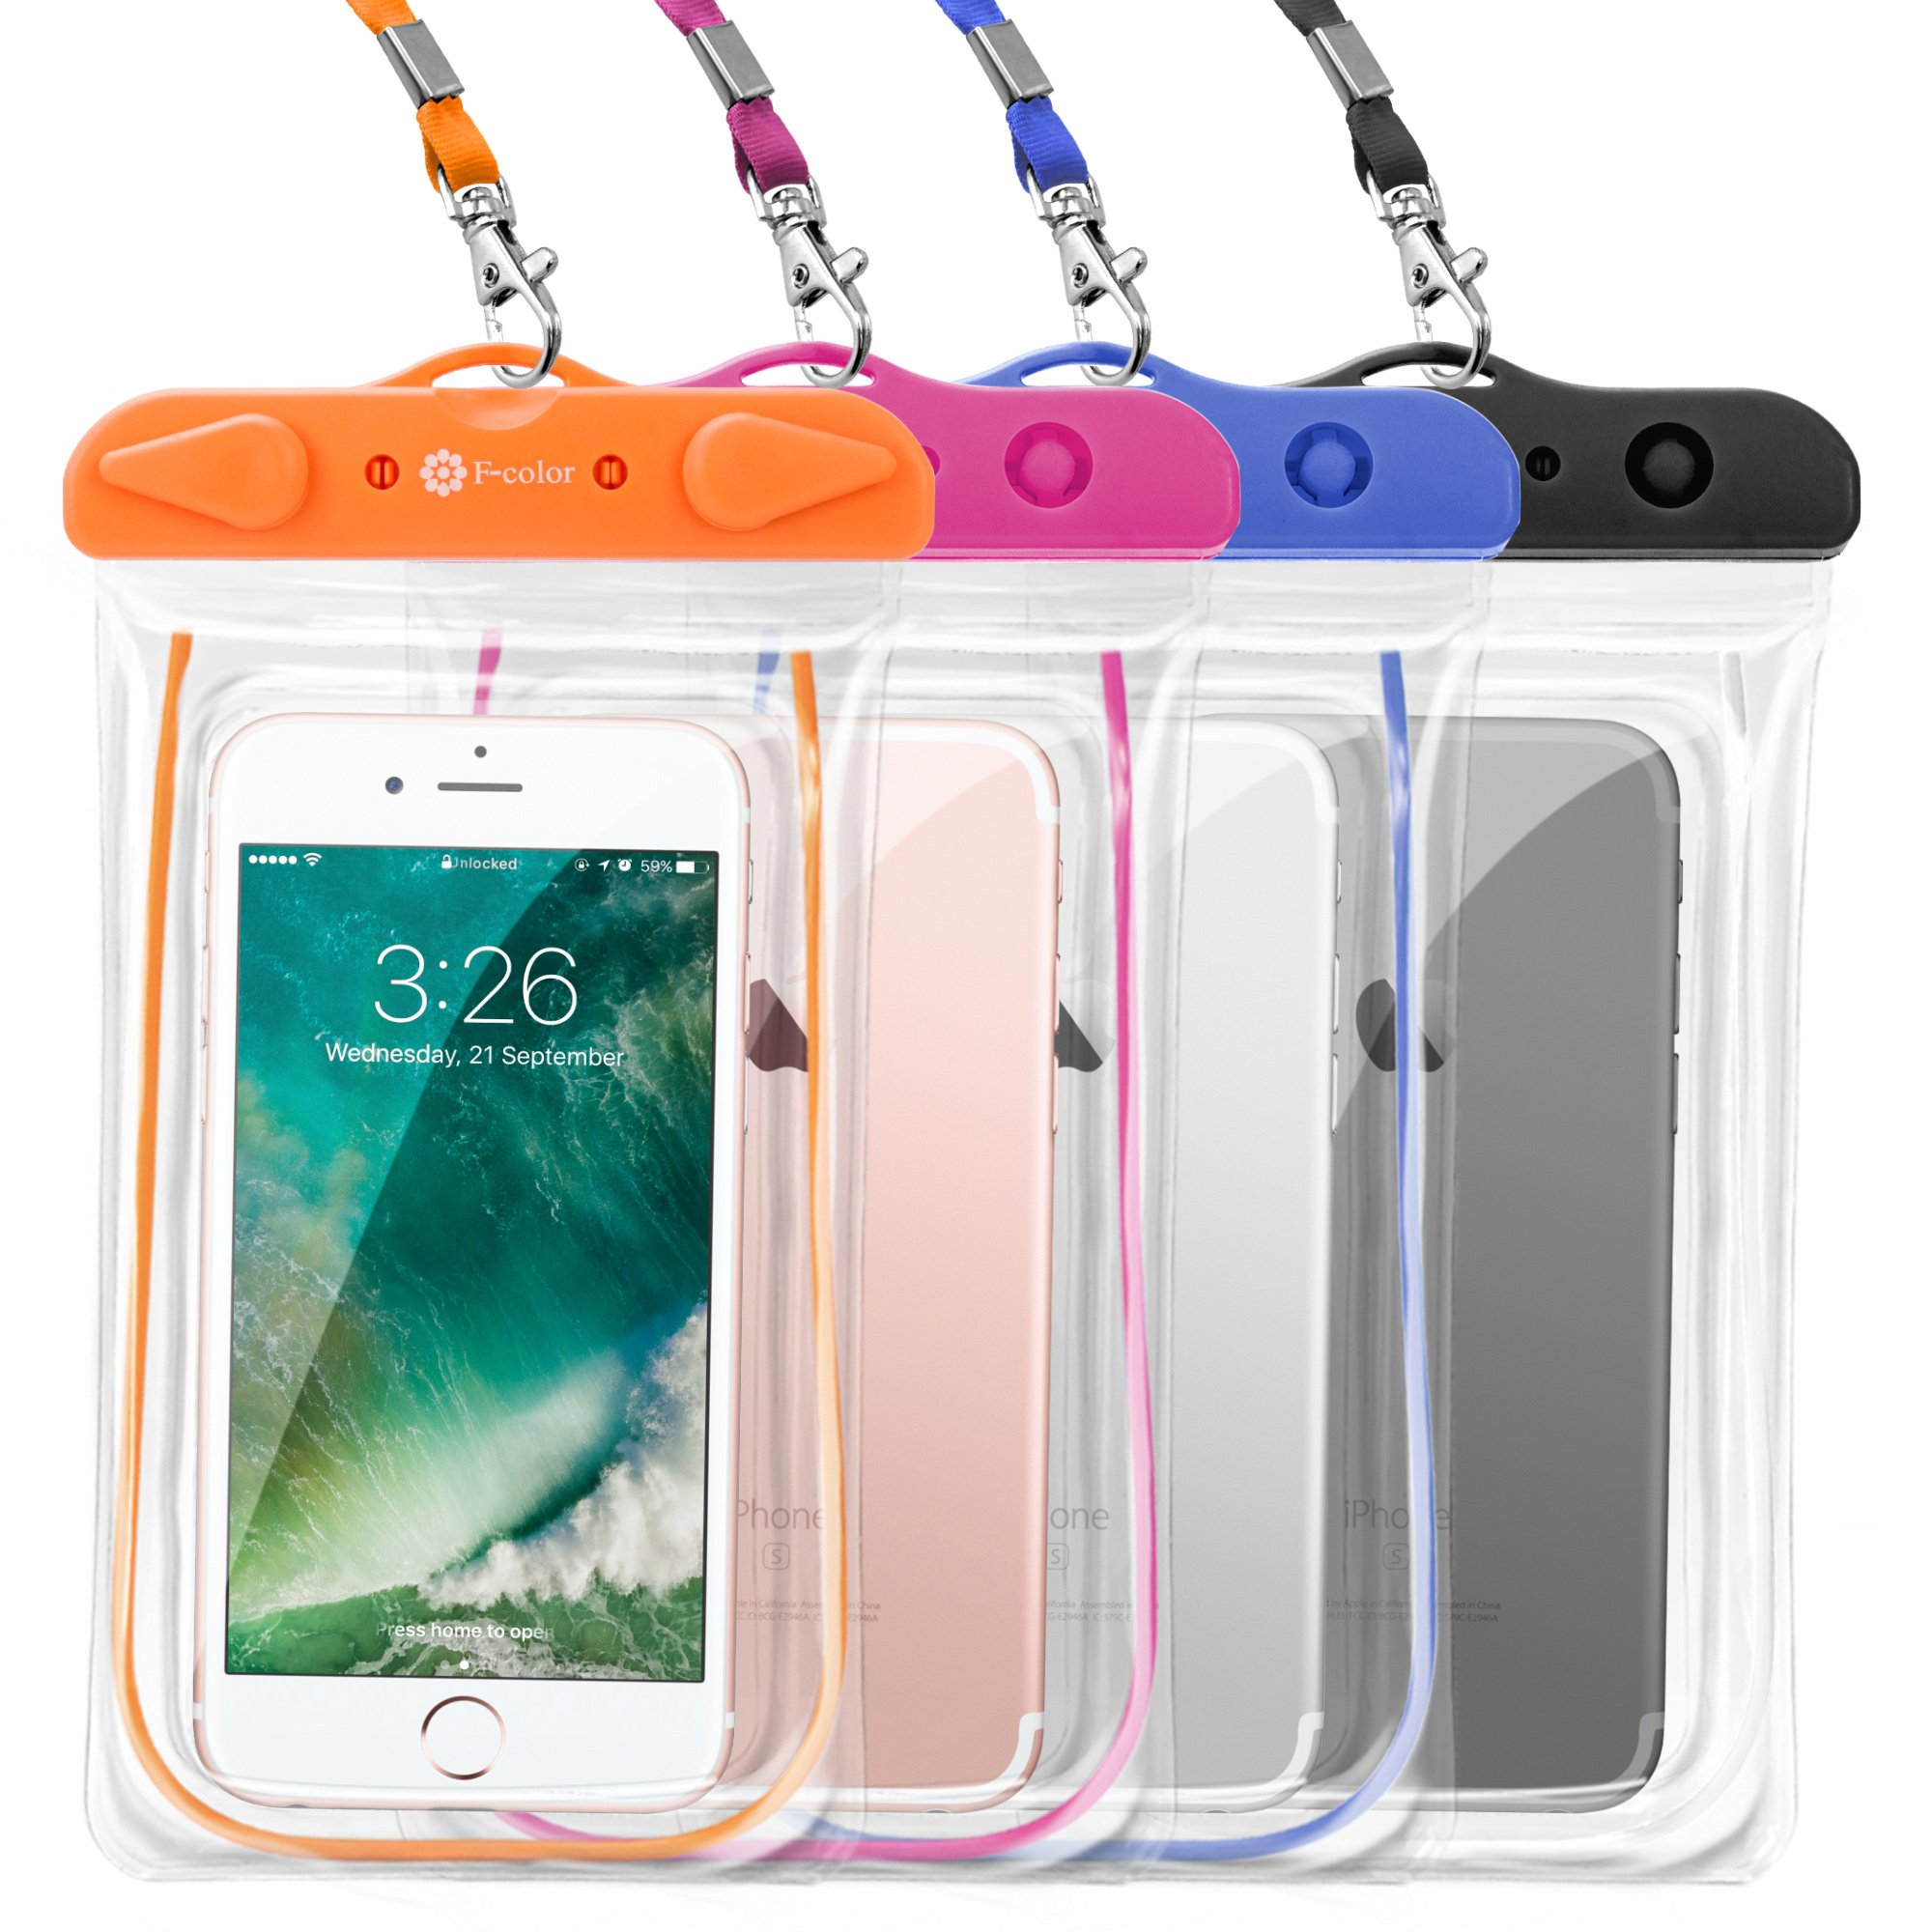 F-color Waterproof Case, 4 Pack Floating Clear Waterproof Phone Pouch TPU Dry Case Compatible iPhone X 8 7 7 Plus Home Button for iPhone, Google Pixel, Samsung, HTC, LG, Blue Black Orange Pink by F-color